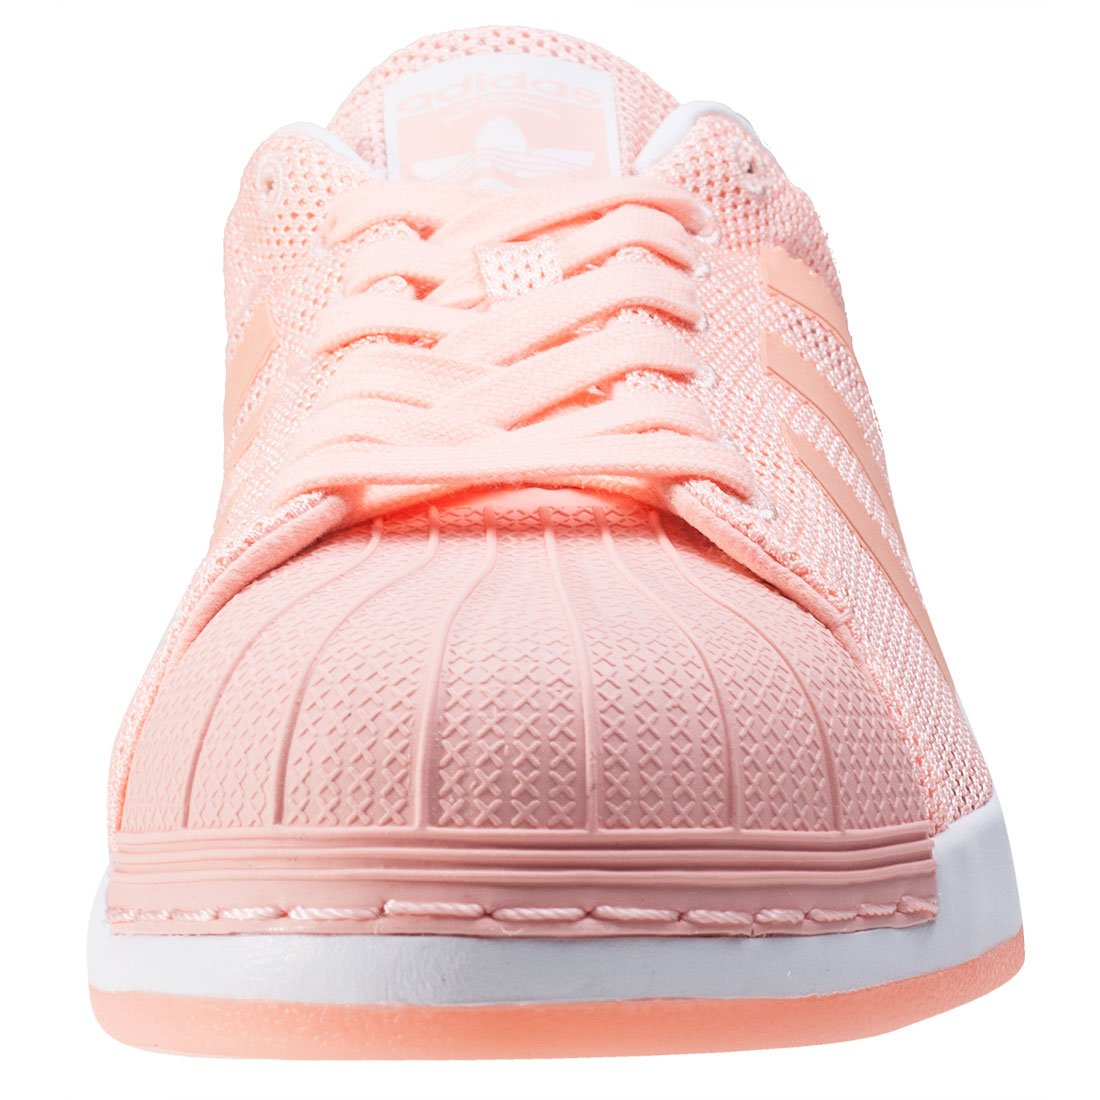 44530e755 adidas Superstar Bounce Mens Trainers Coral - 11 UK  Amazon.co.uk  Shoes    Bags